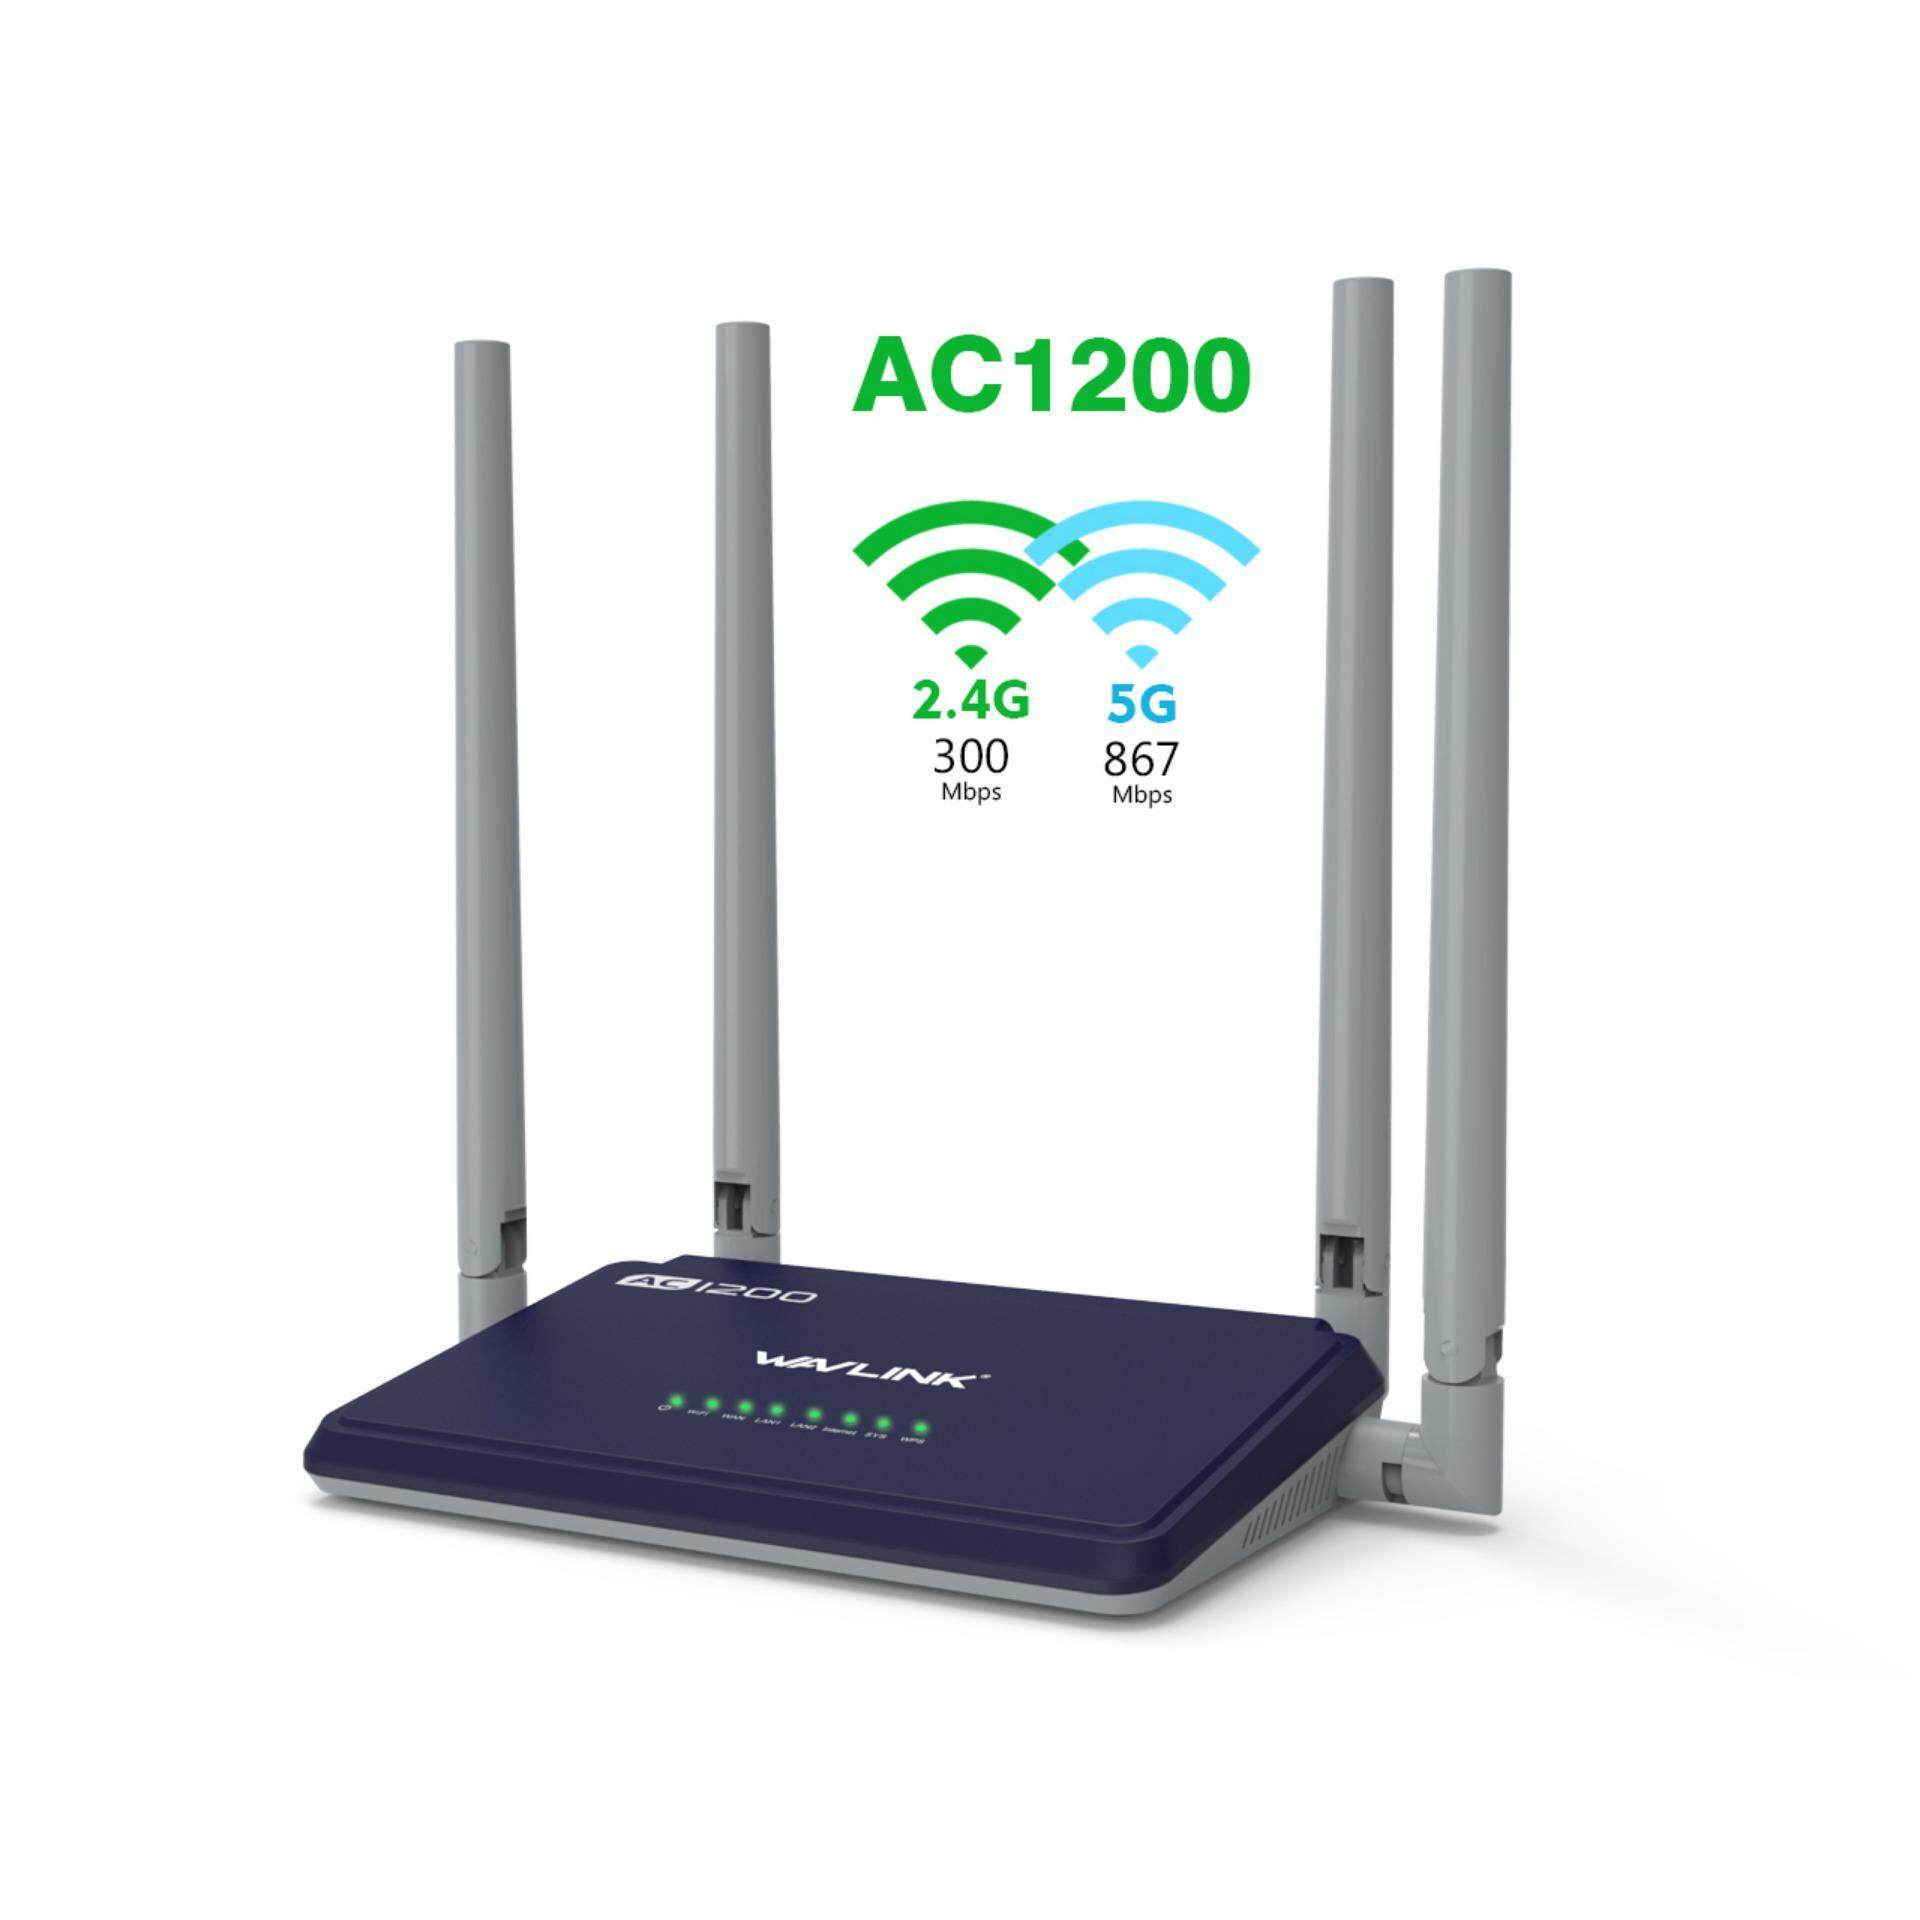 Features Totolink A3002ru Ac1200 Wireless Dual Band 2 4ghz 5ghz Asus Rt Ac55uhp High Power Router Ac 1200 Mbps Wavlink Smart With 4 External Antennas Wps Button